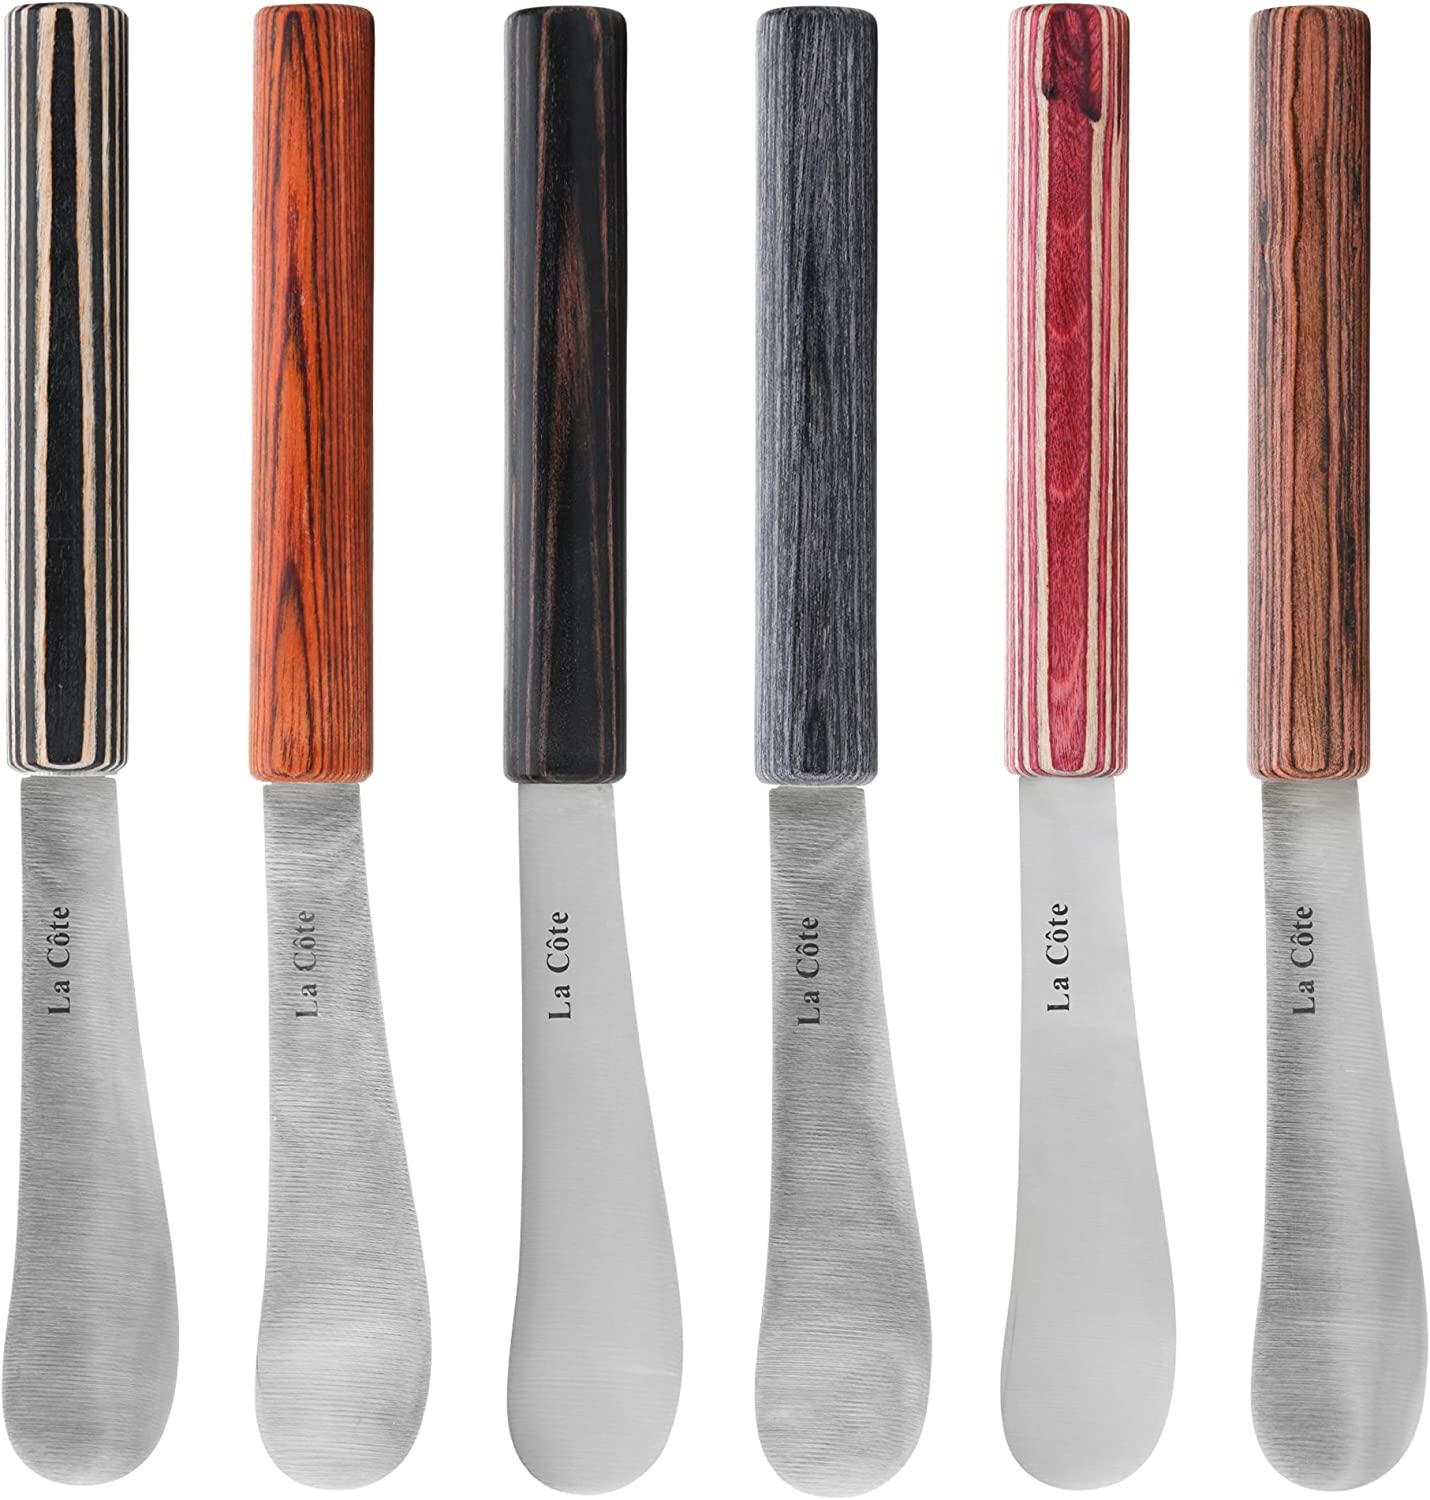 La Cote 6 Piece Cheese Knife Steel Blade Spreader Trust Stainless Set Sales of SALE items from new works